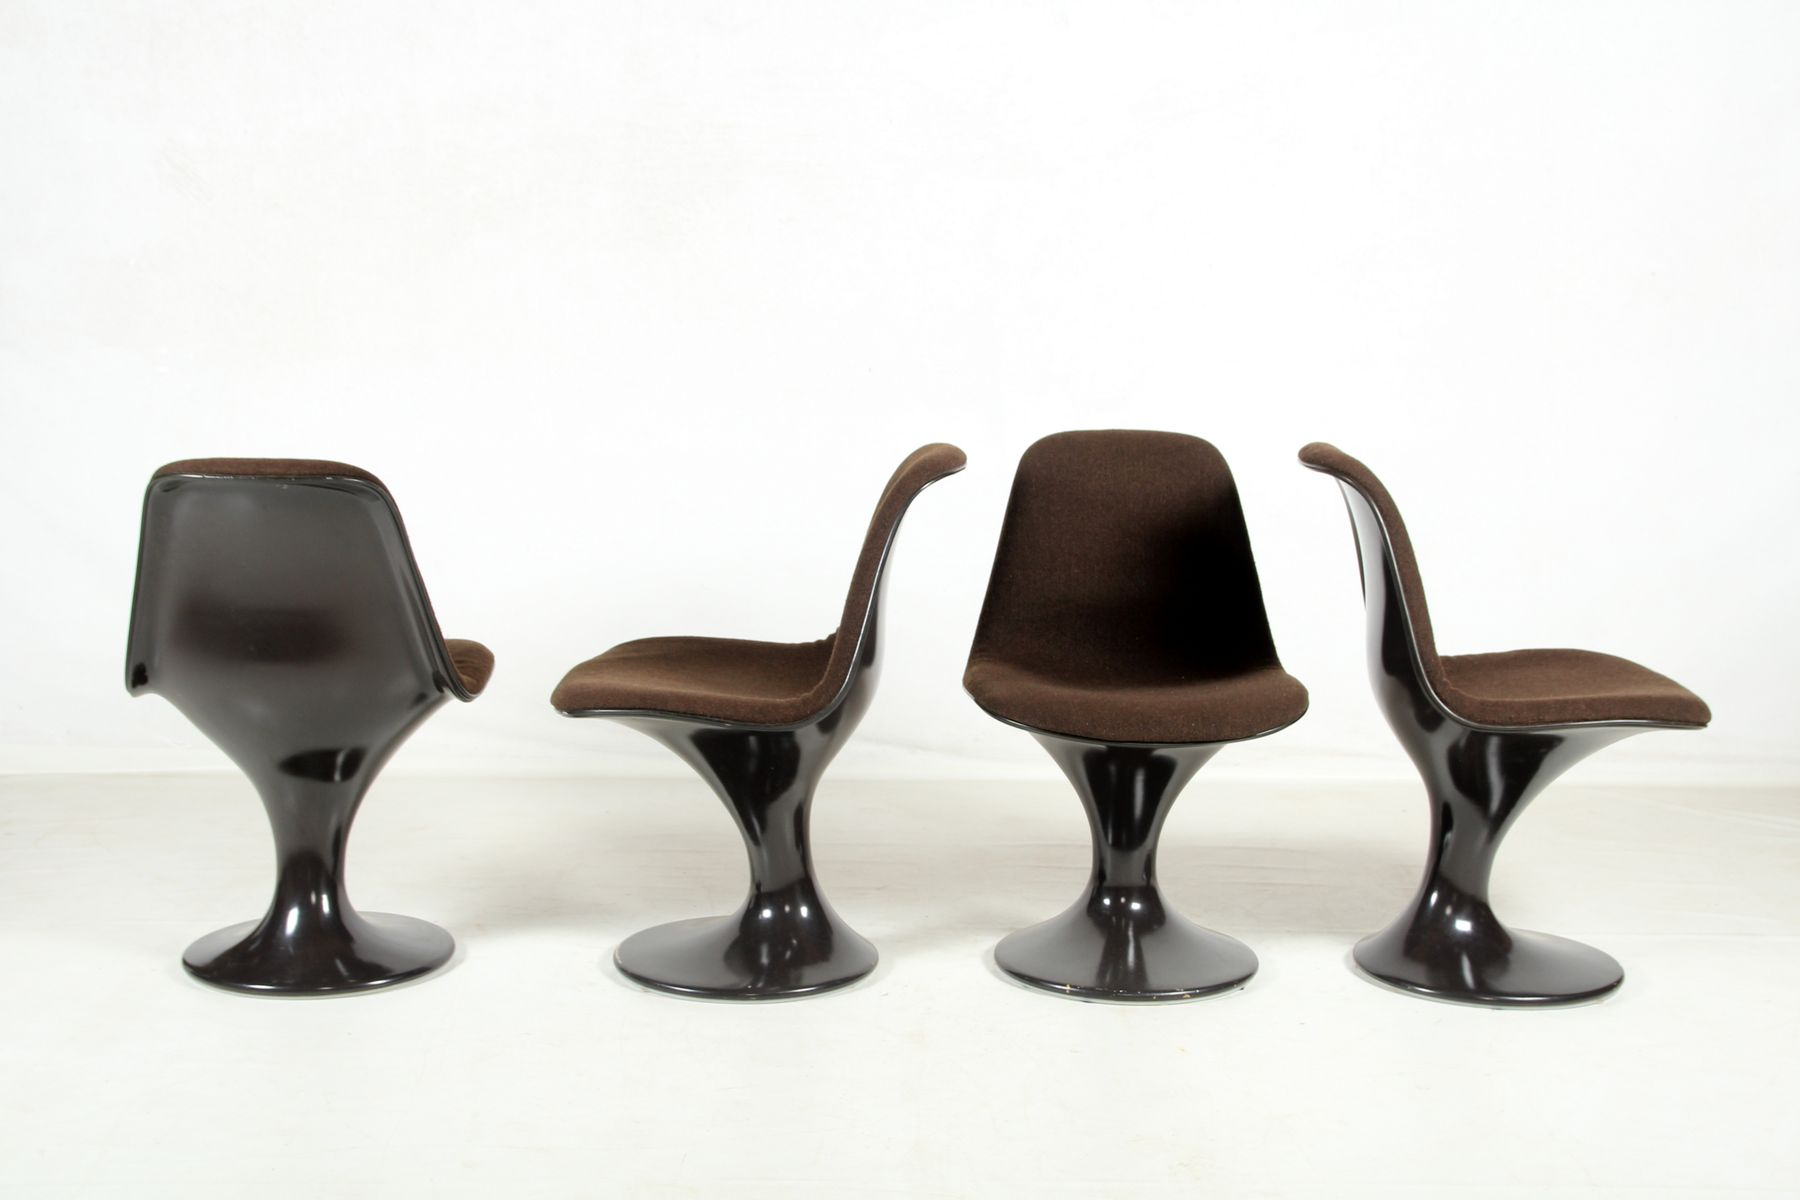 Orbit Chairs by Markus Farner and Walter Grunder for Vitra 1960s